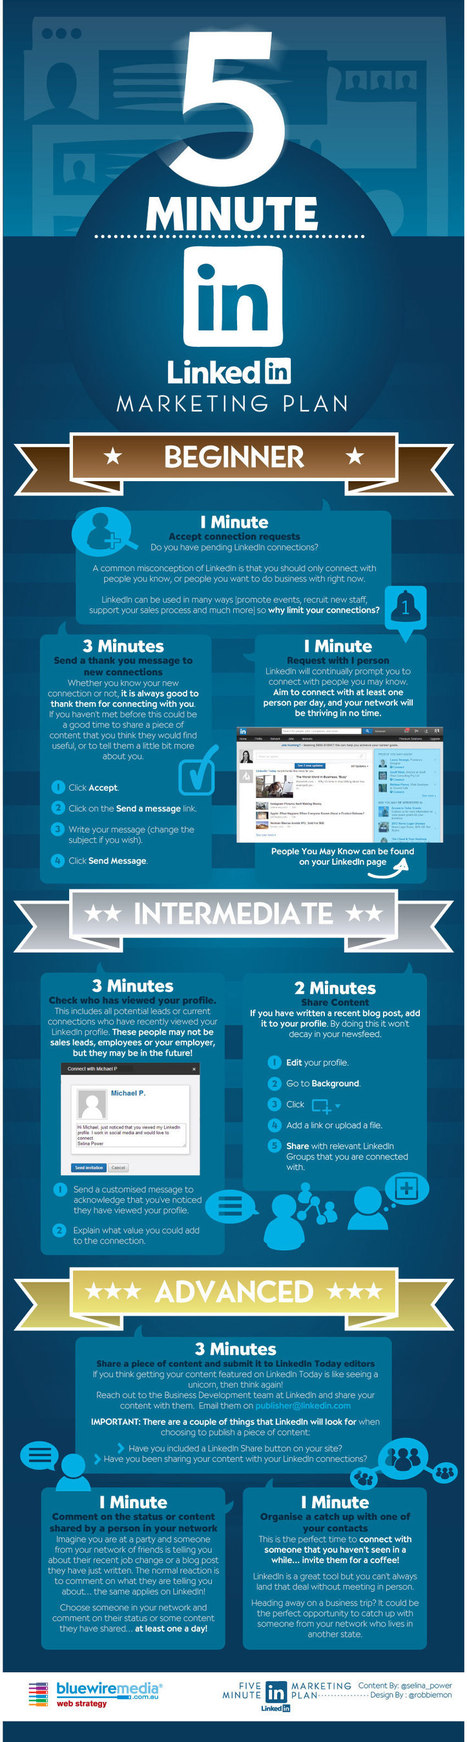 LinkedIn Marketing Strategy Infographic - Bluewire Media | Mokili Digital | Scoop.it